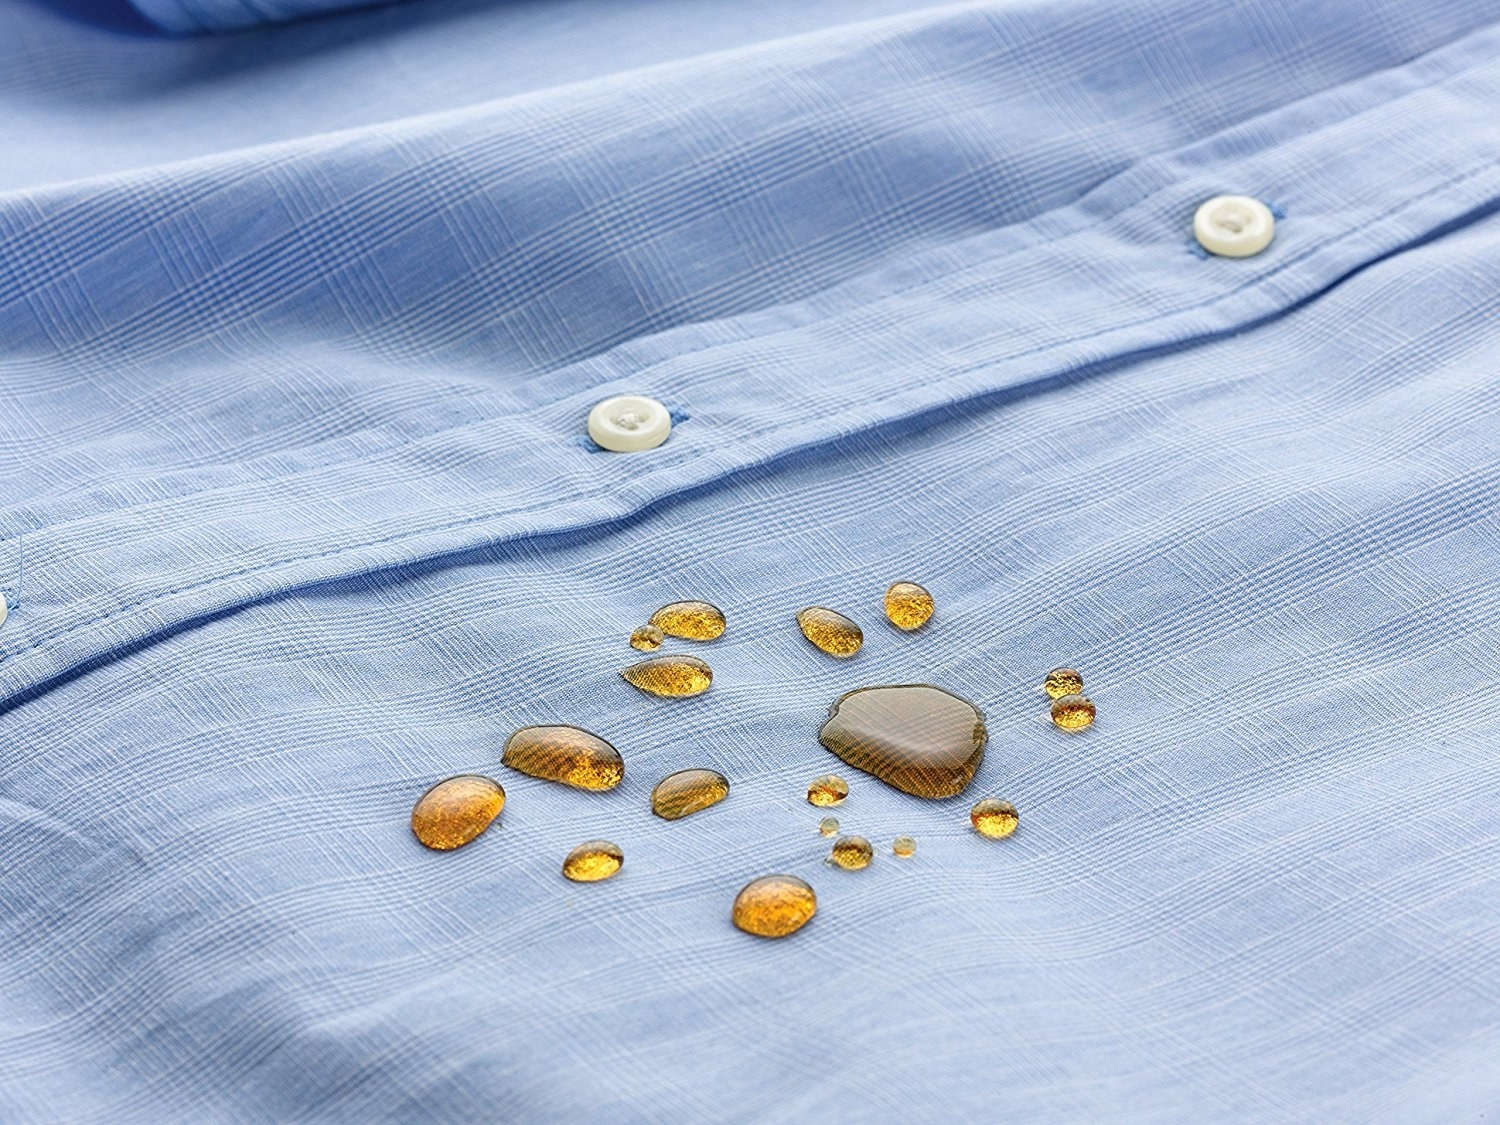 button up dress shirt with spilled soda on it beaded instead of soaking into the fabric